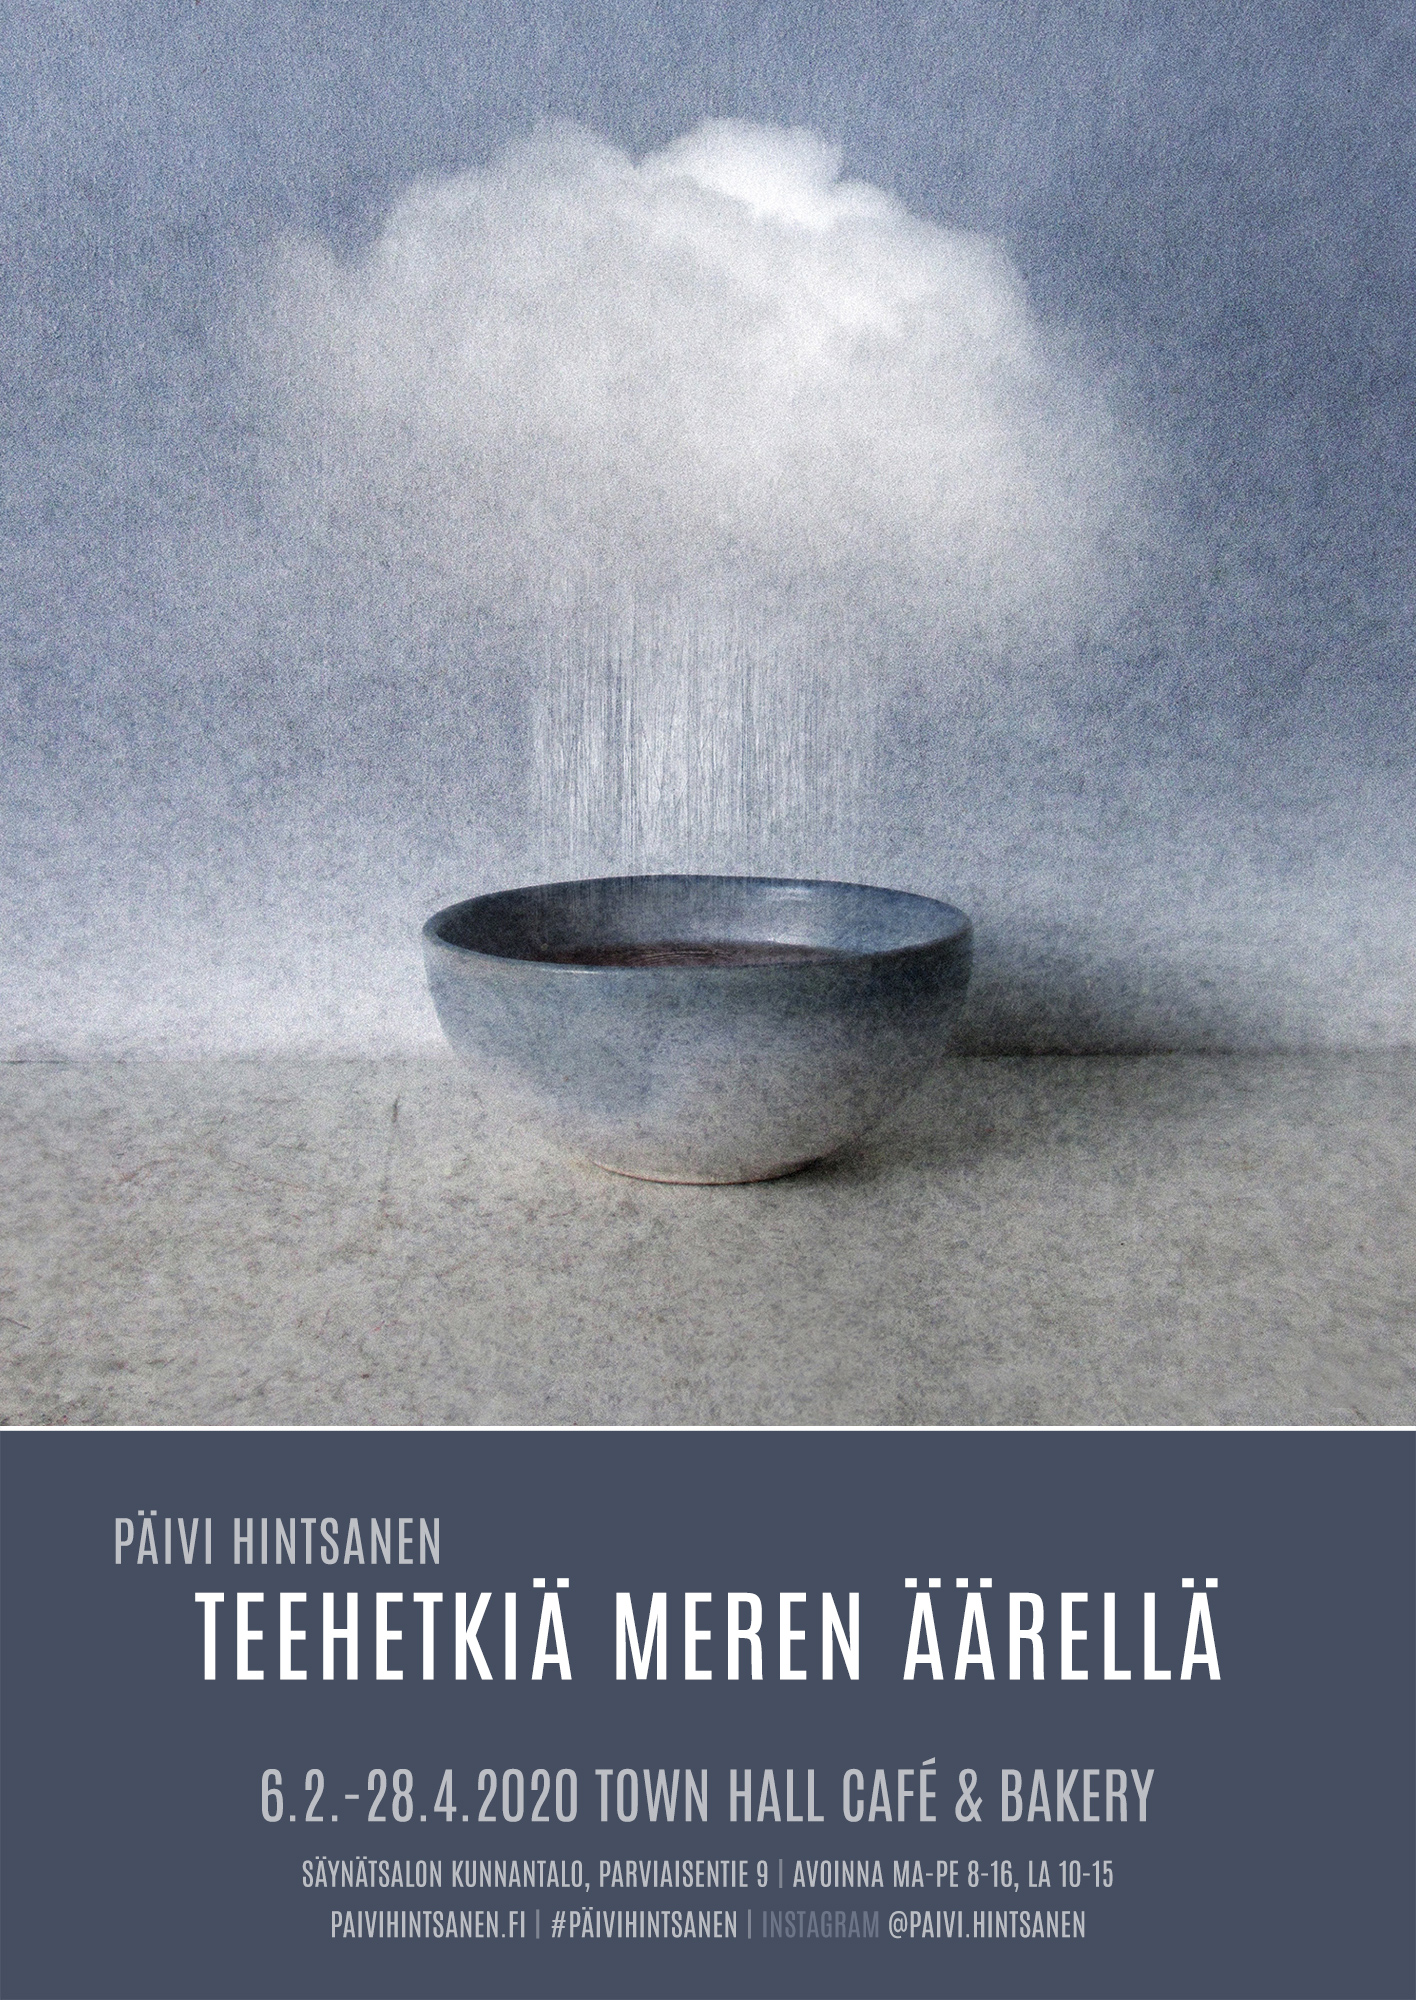 Teehetkiä meren äärellä - Moments for Tea by the Sea